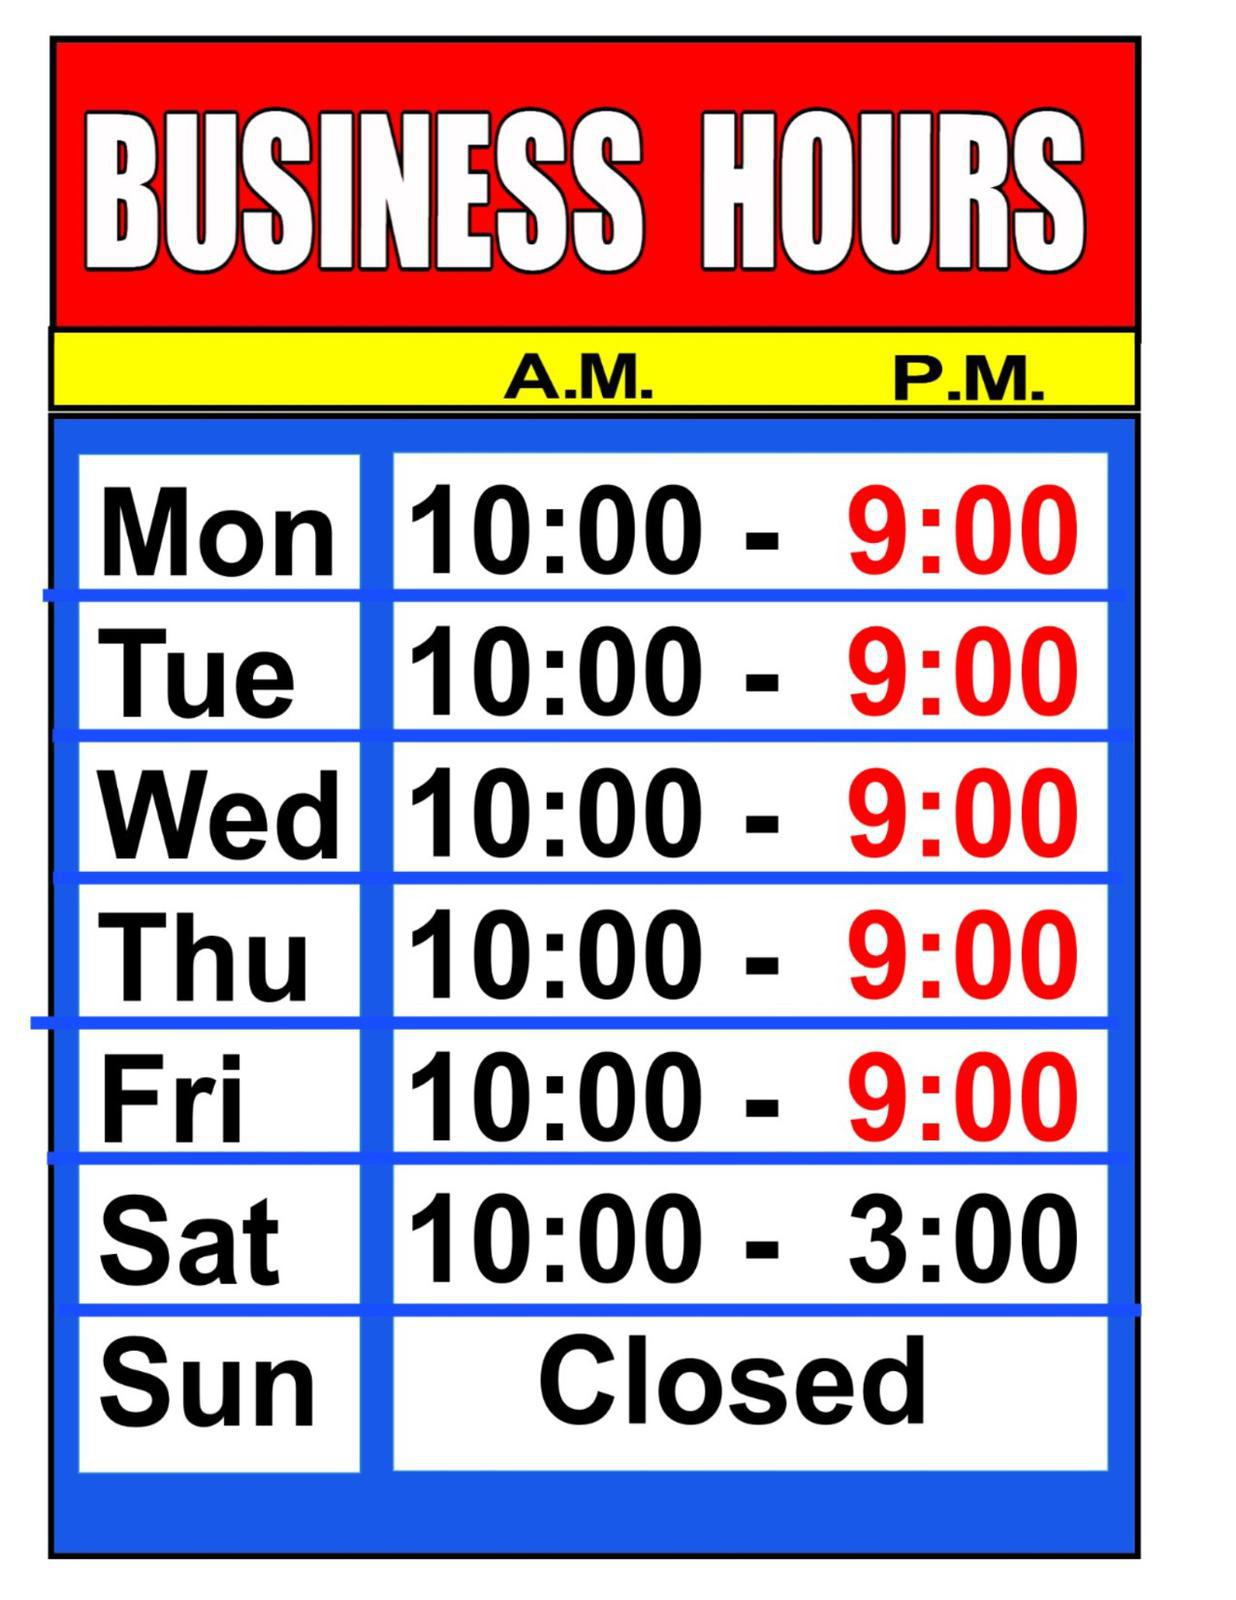 NEW HOURS TILL 9PM